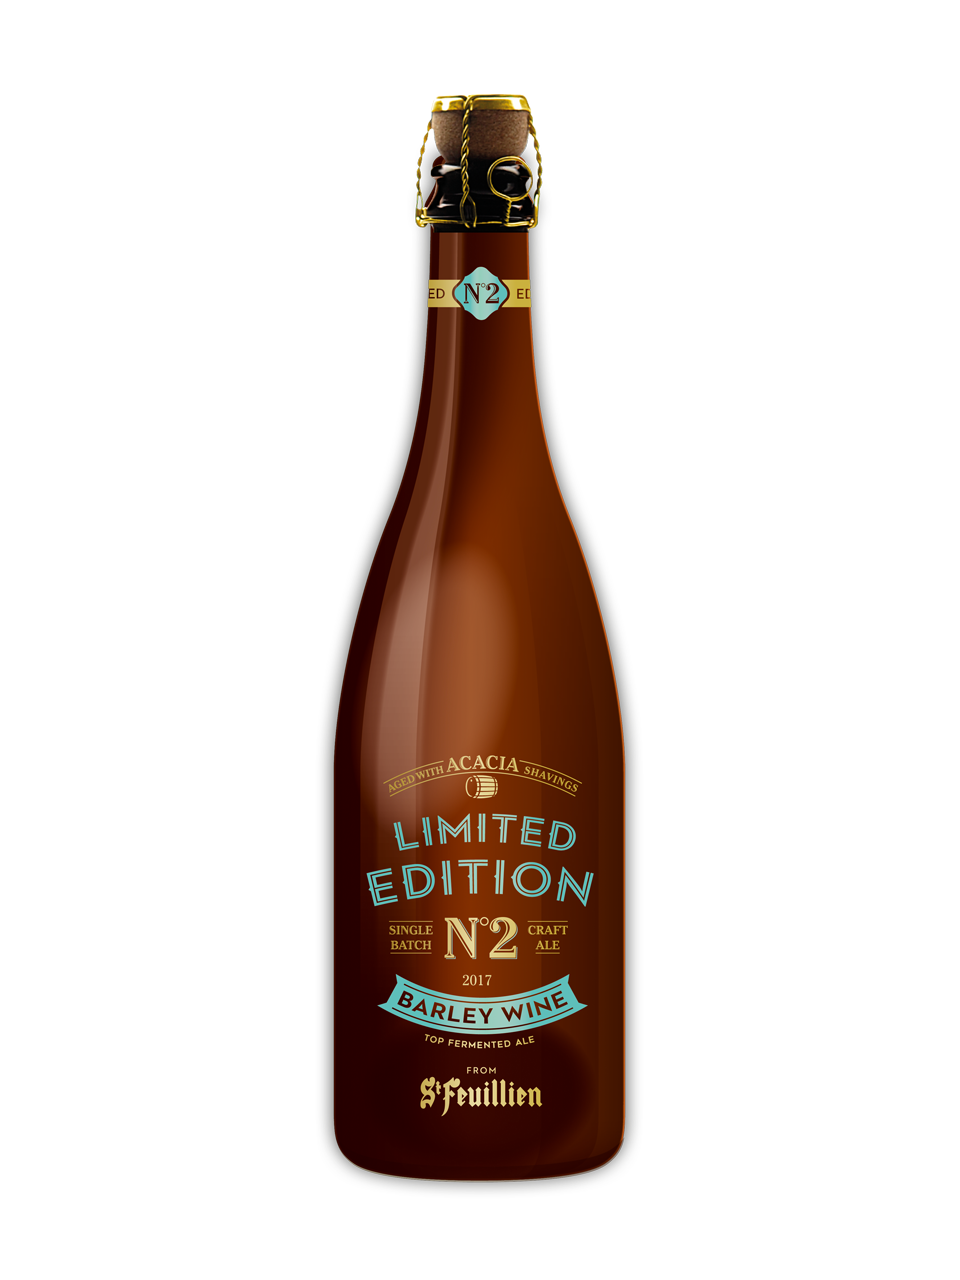 St. Feuillien Limited Edition Barley Wine